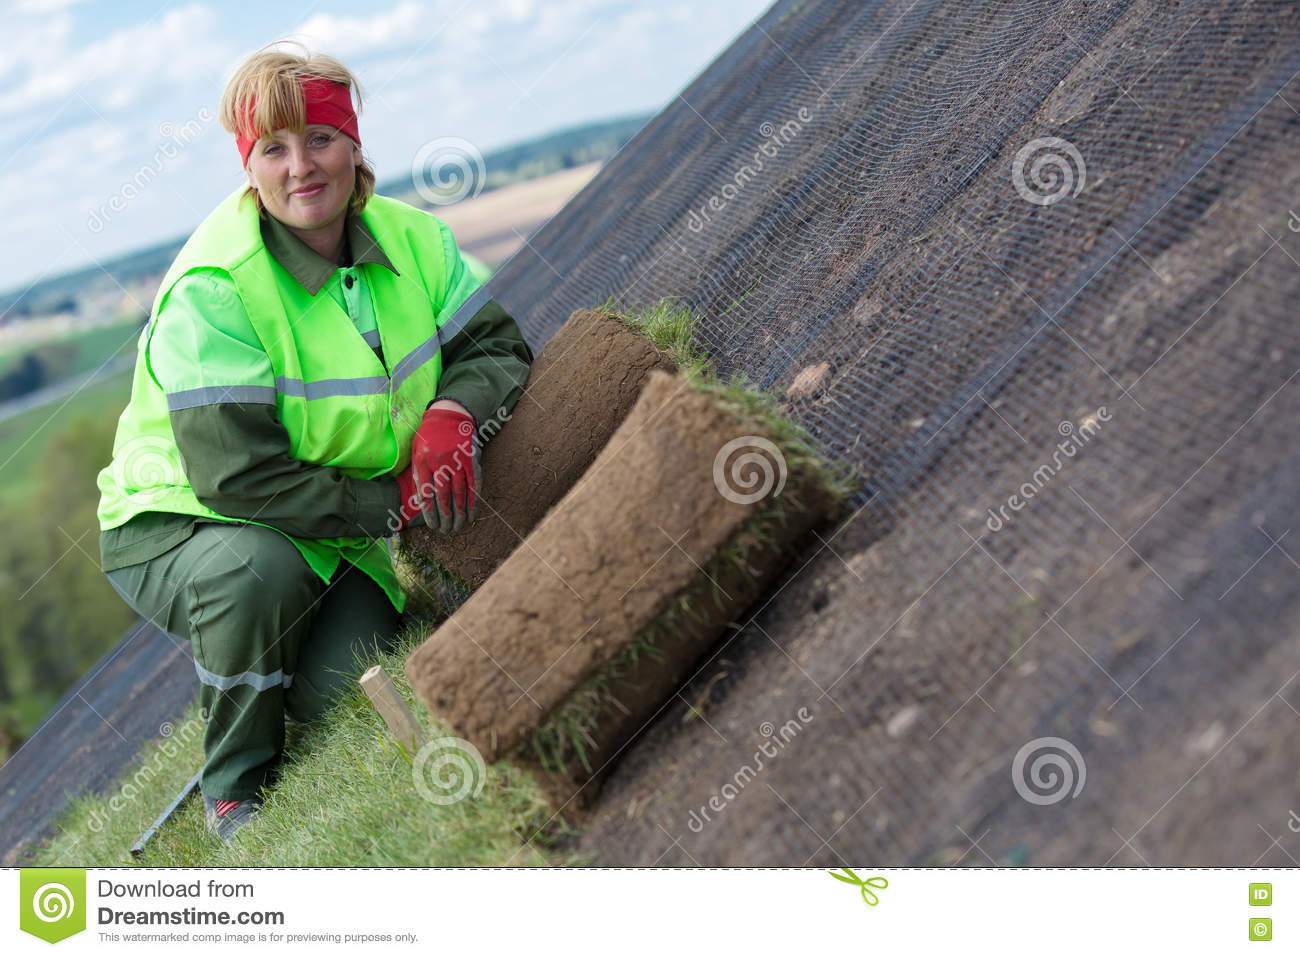 Rolled Sod Grass Turf For New Lawn Installation Stock Image